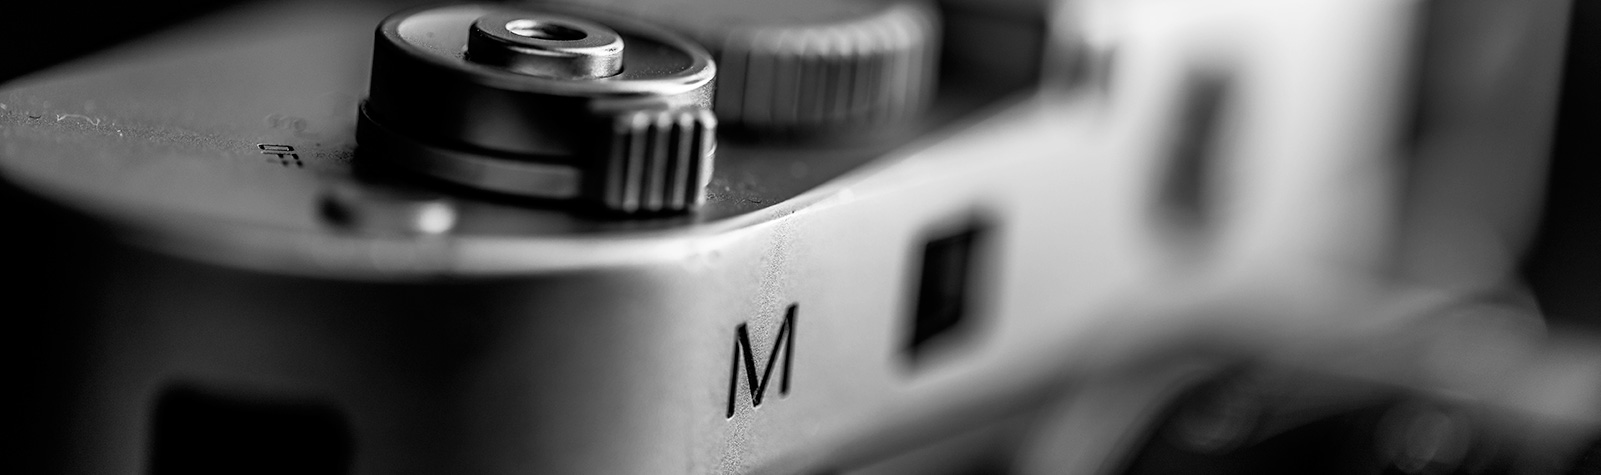 About Leica Lenses for Normal People